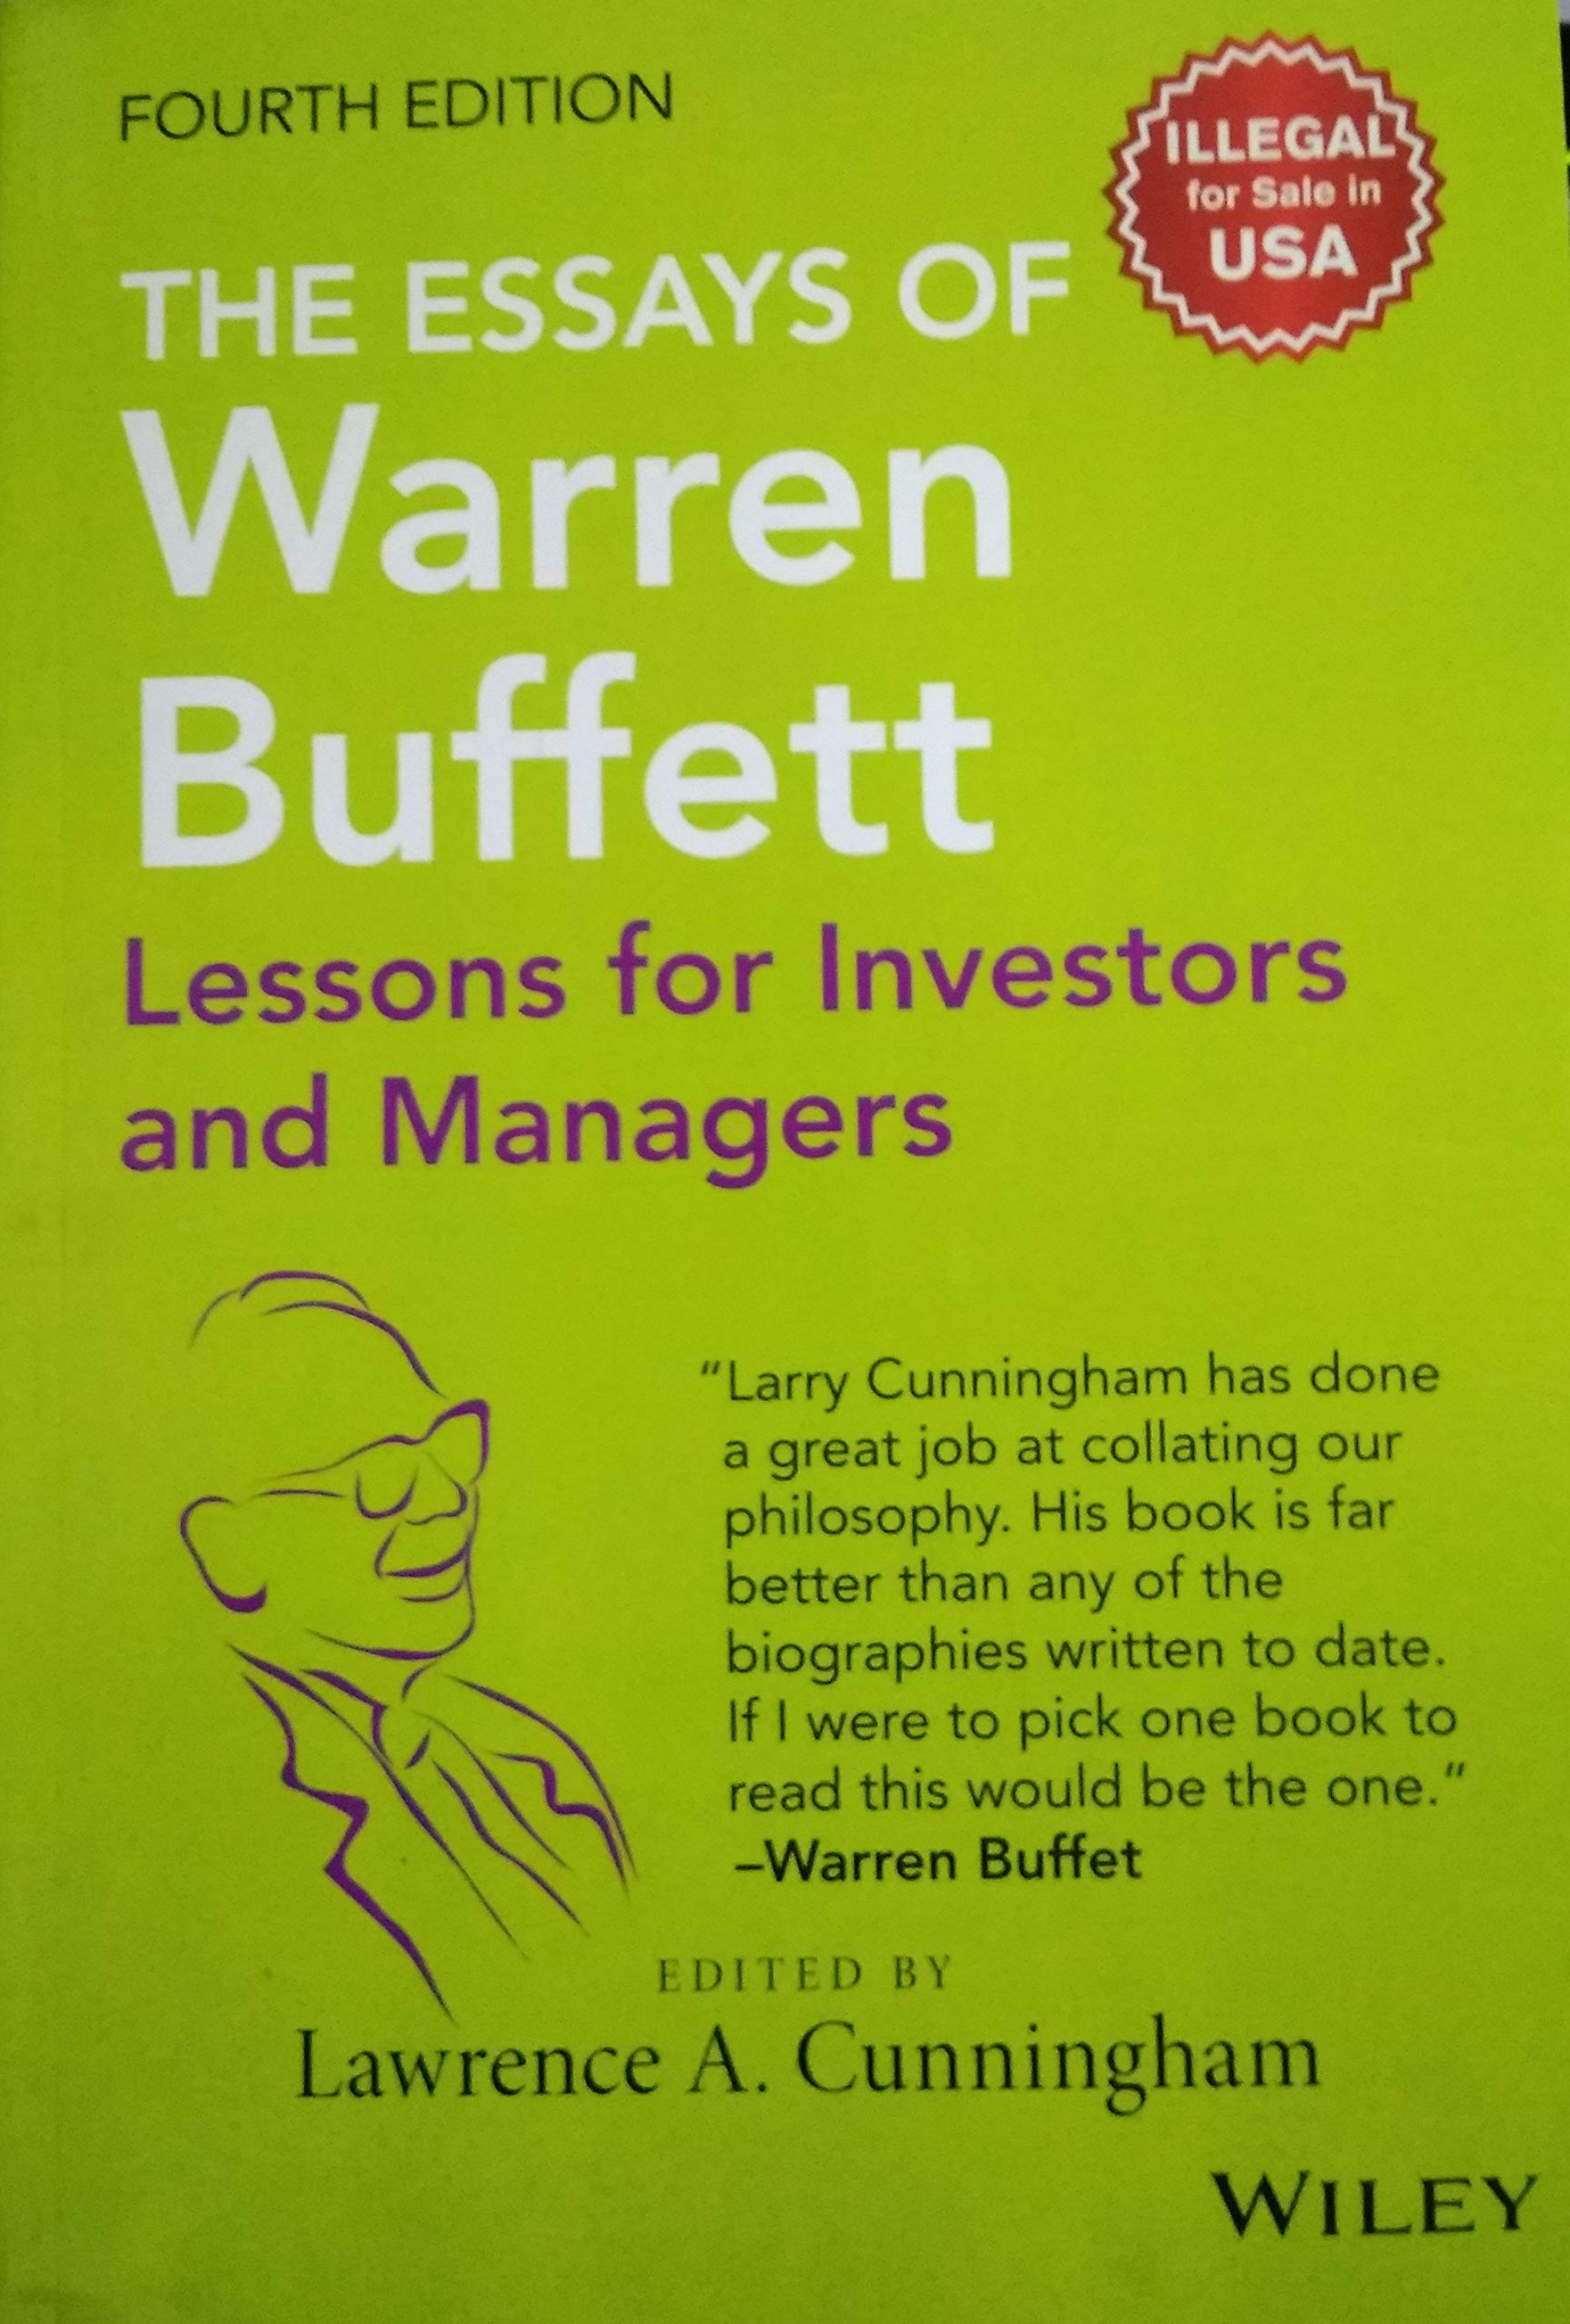 006 Essays Of Warren Buffett 81k2r32ddul Essay Top 4th Edition The Pdf Free 1920